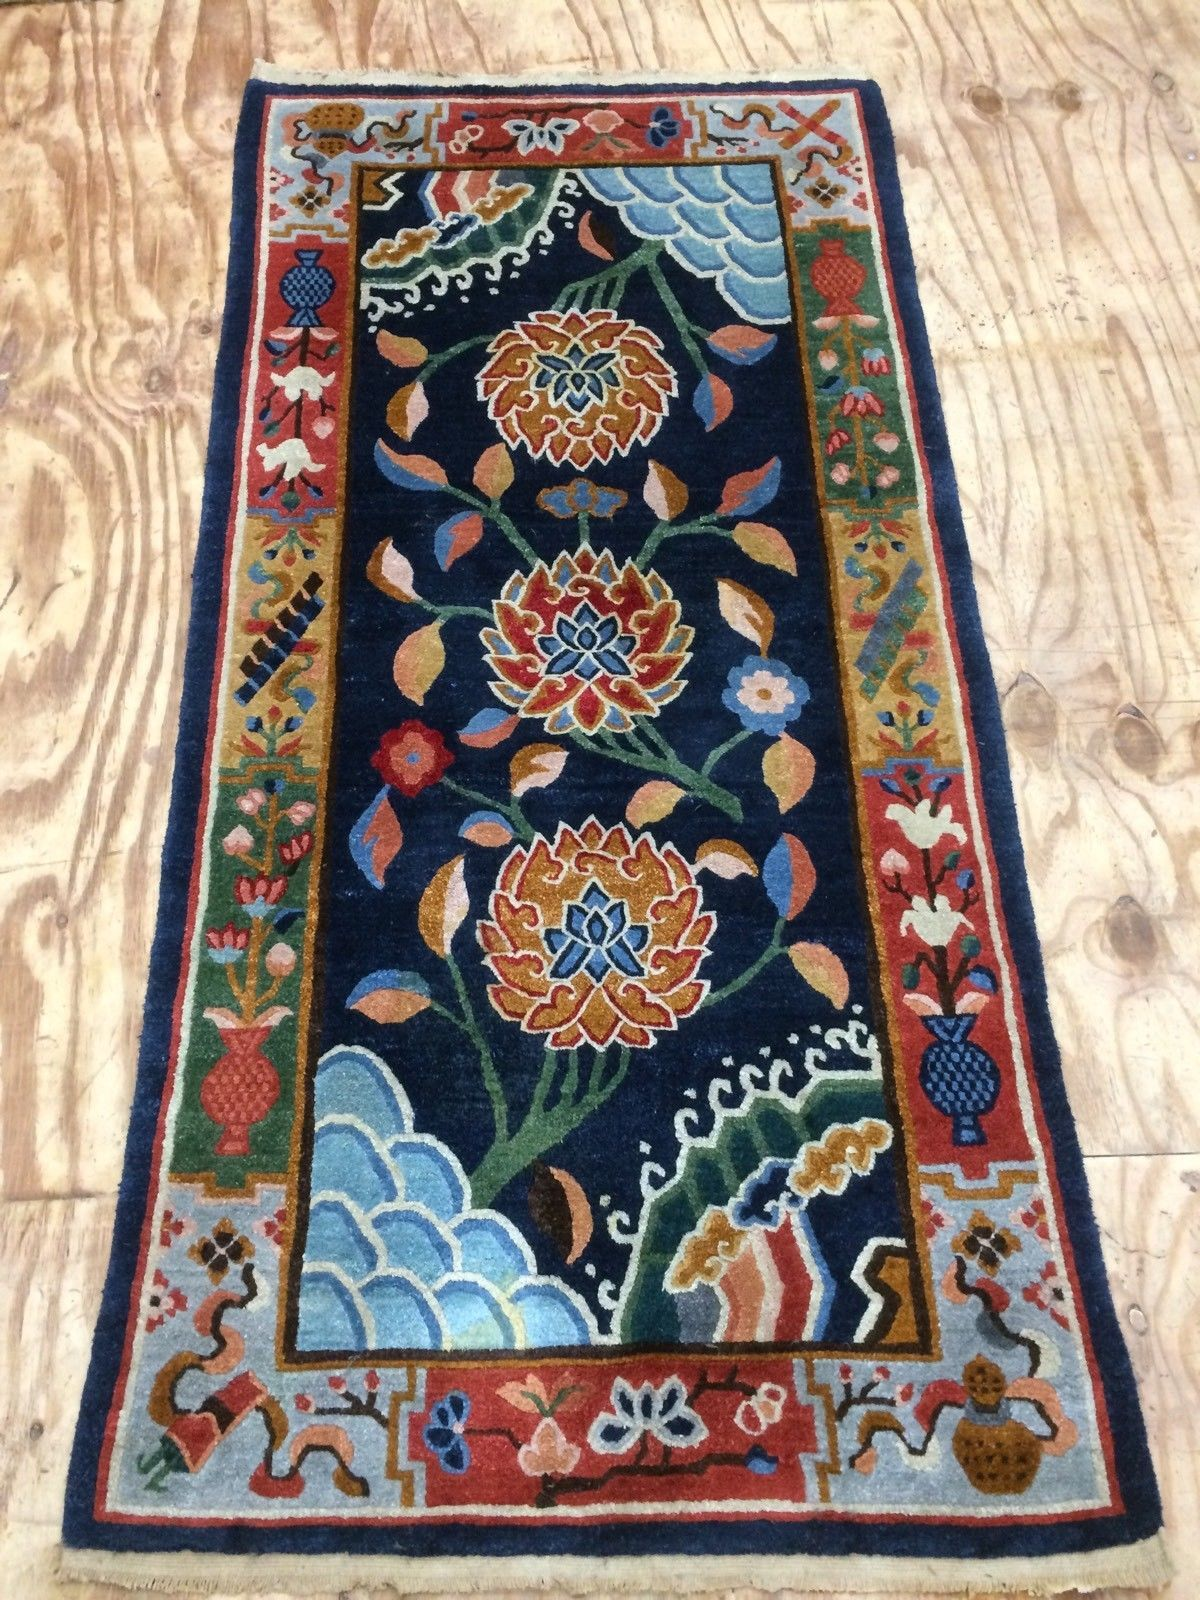 walmart boho best boucherouite room modern decoration rug ebay ideas diy bohemian rugs moroccan table living of vintage vases area wayfair